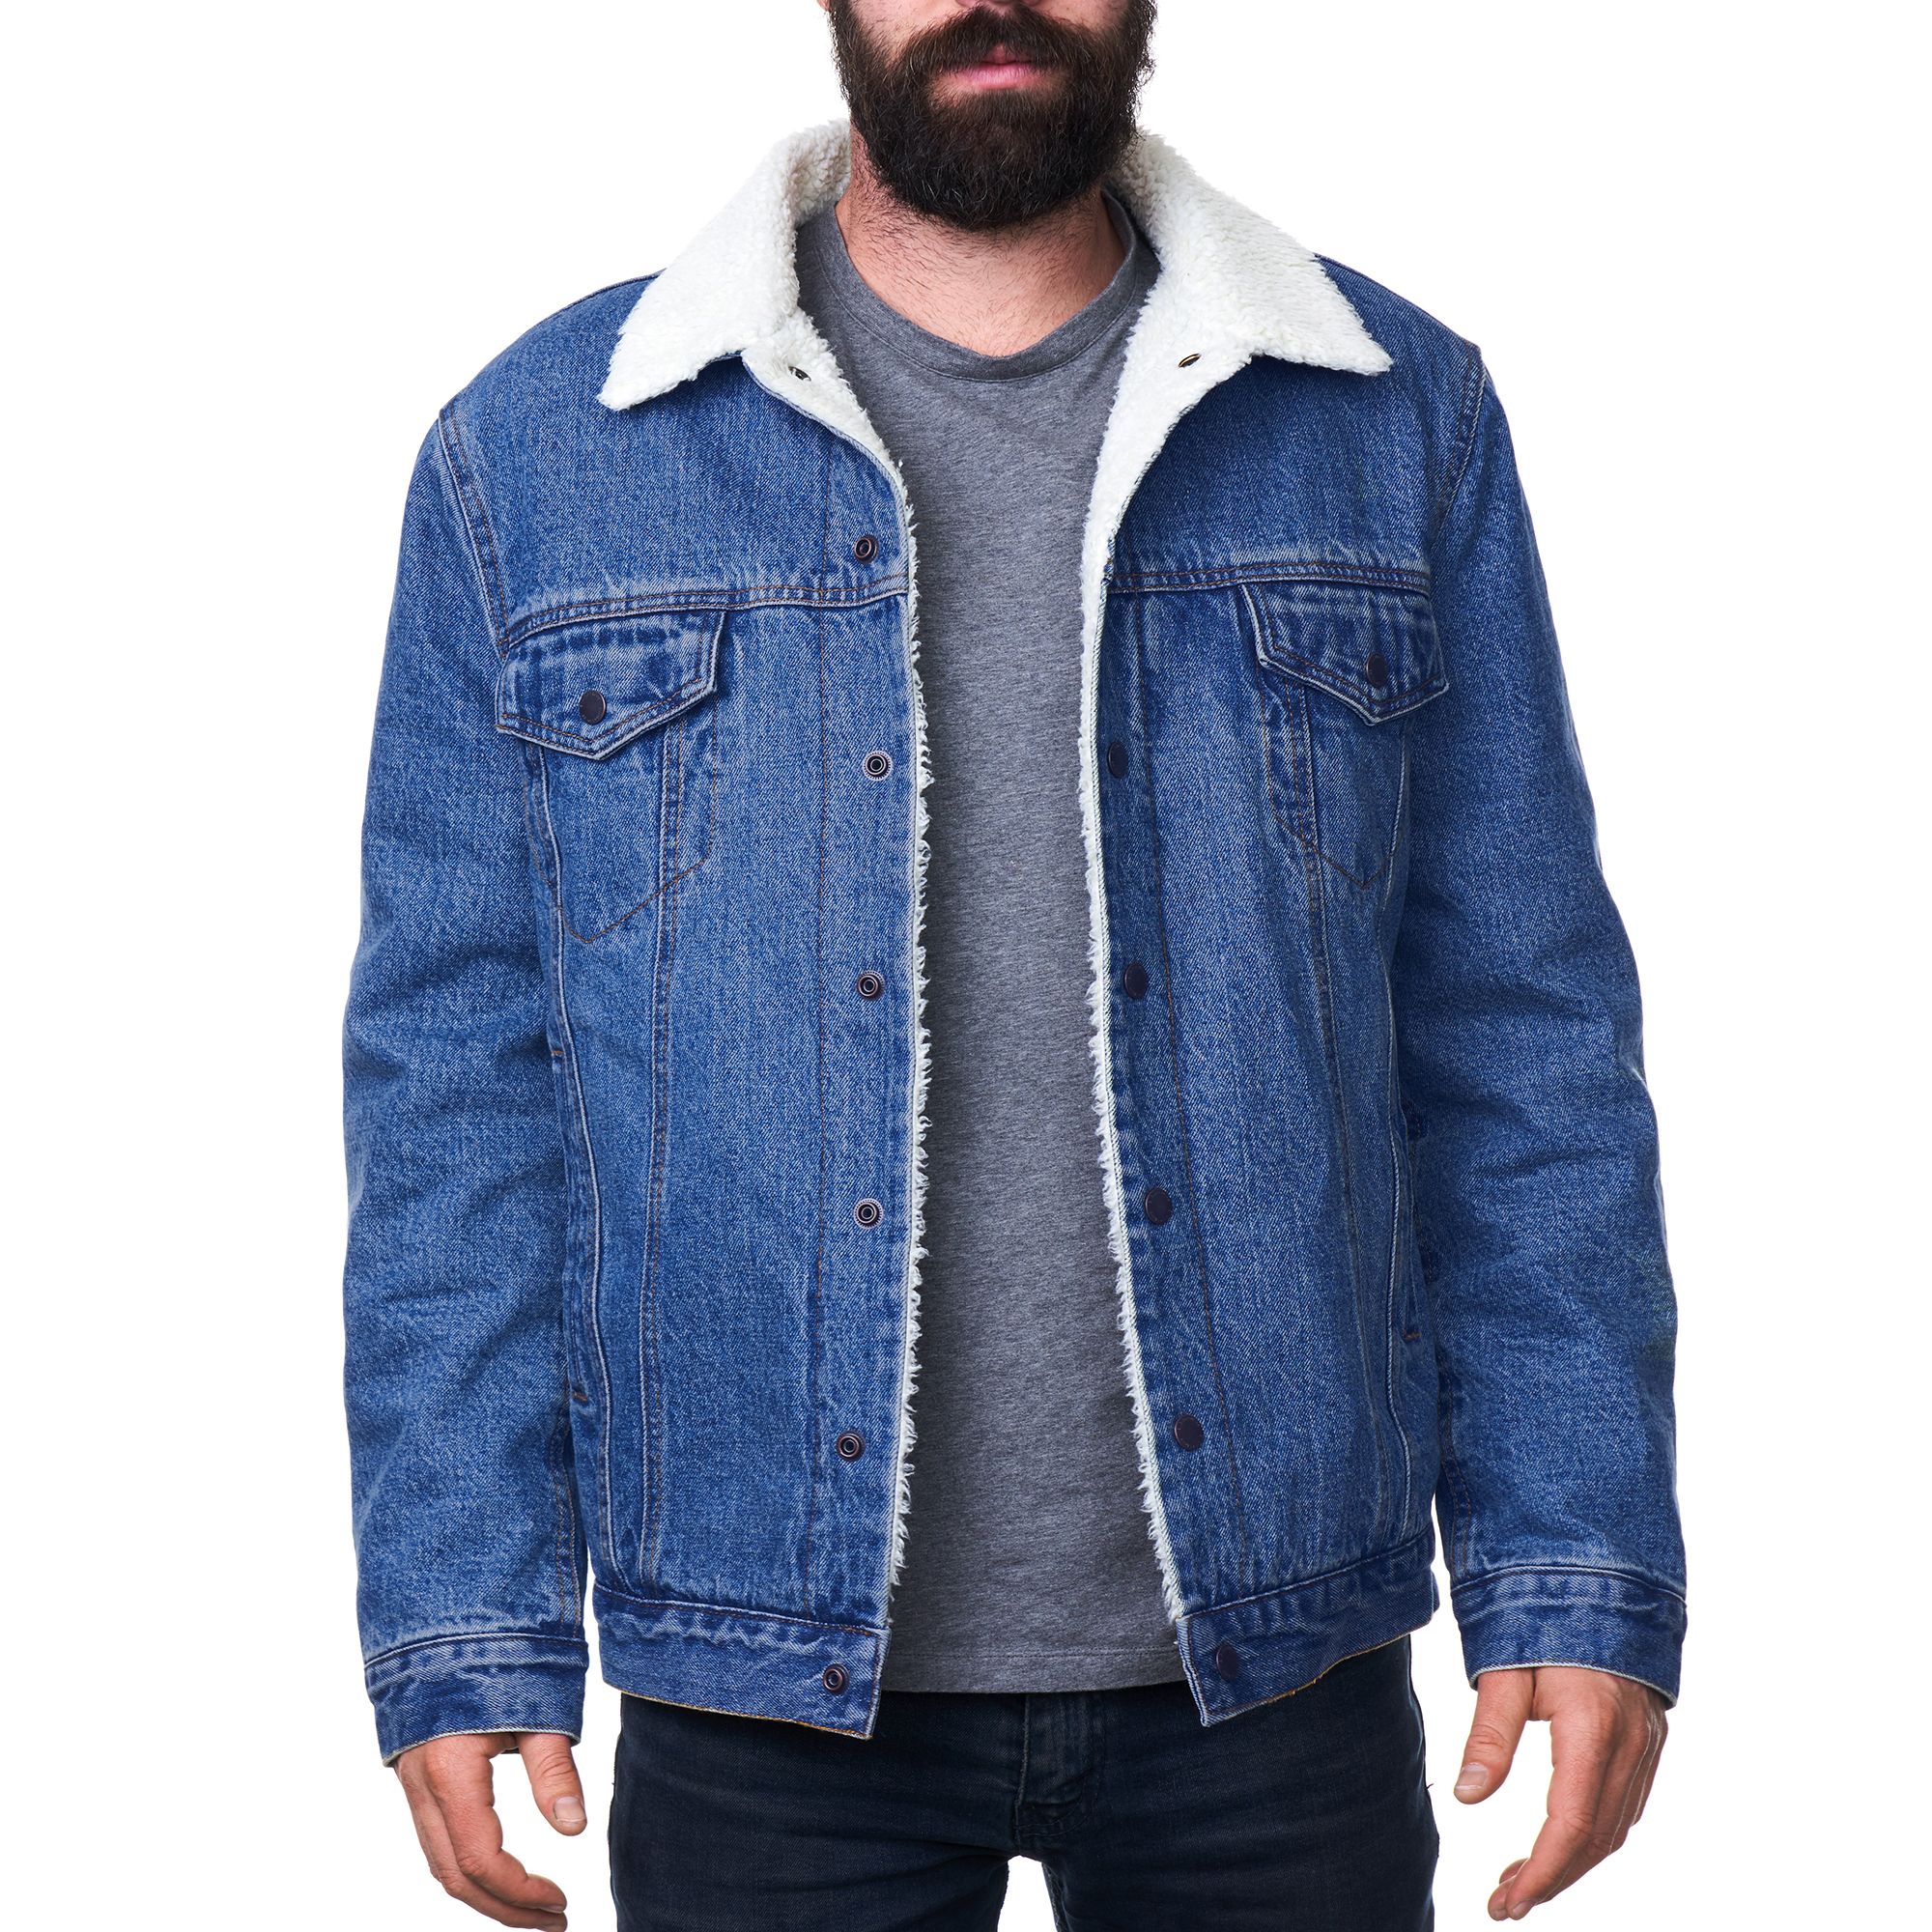 Details about Alpine Swiss Mens Sherpa Lined Denim Jacket Classic Button Up Jean Trucker Coat